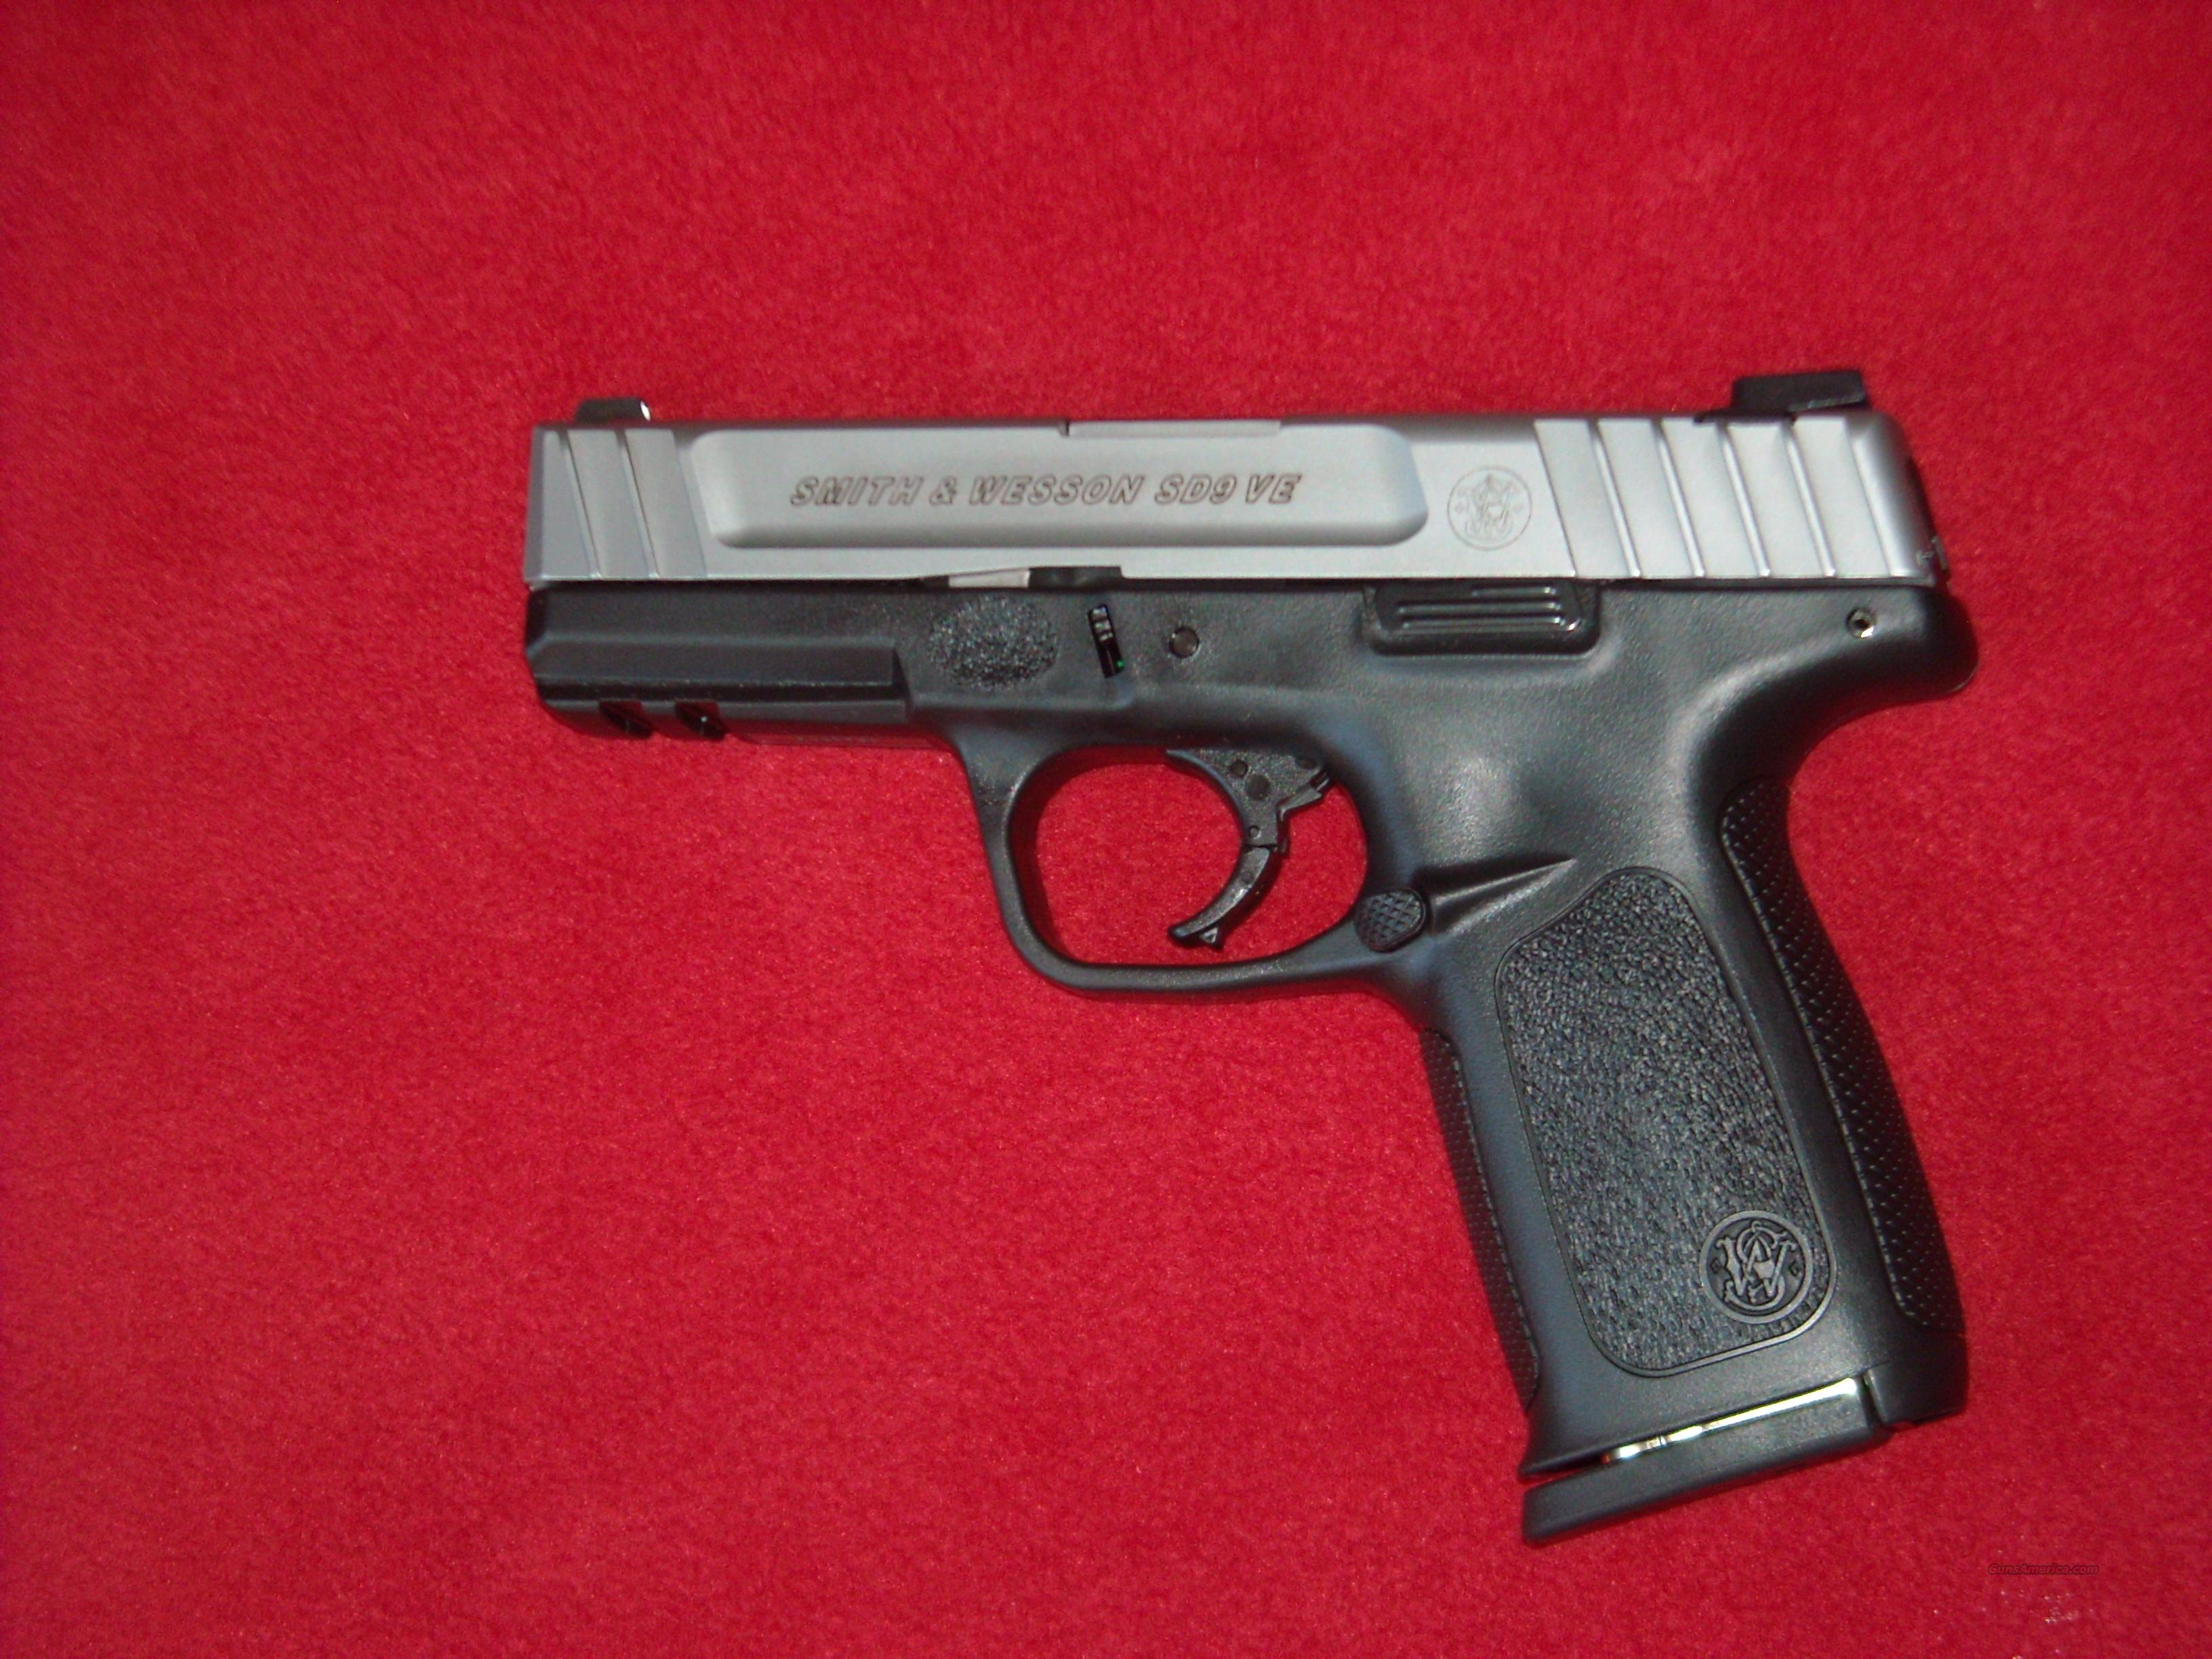 Smith & Wesson SD9 VE  9mm  Guns > Pistols > Smith & Wesson Pistols - Autos > Polymer Frame